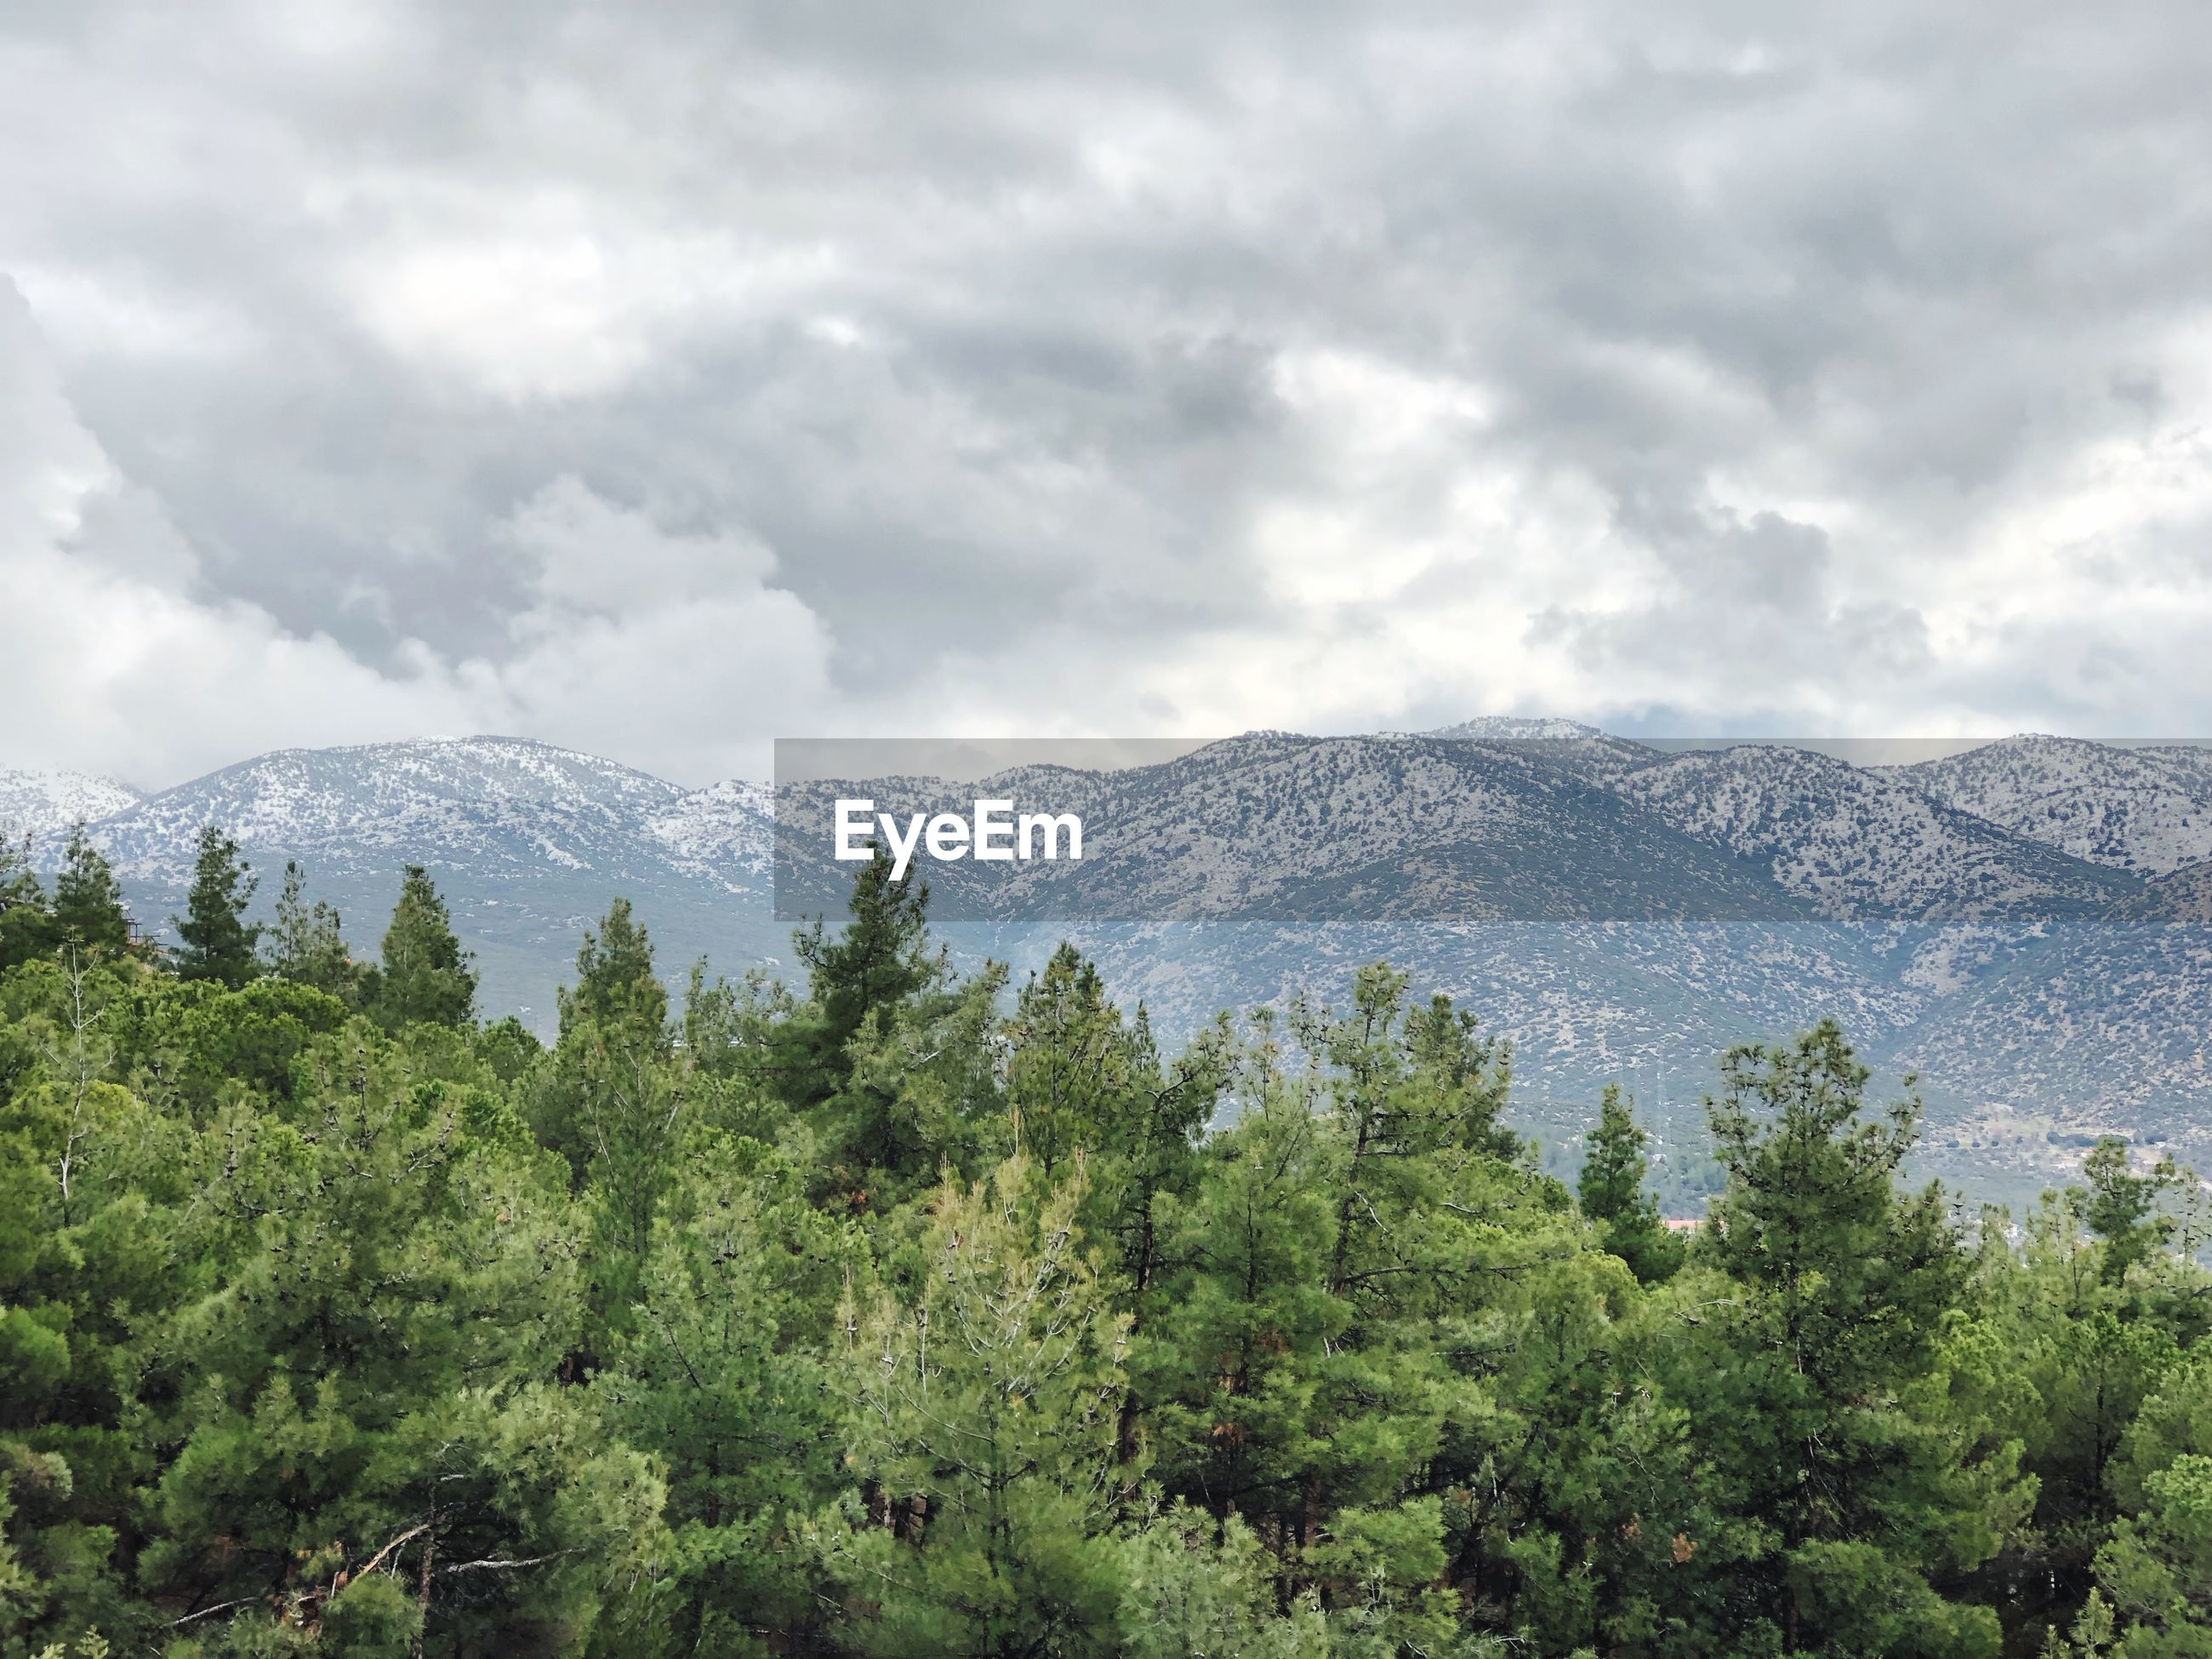 SCENIC VIEW OF TREES AND MOUNTAIN AGAINST SKY